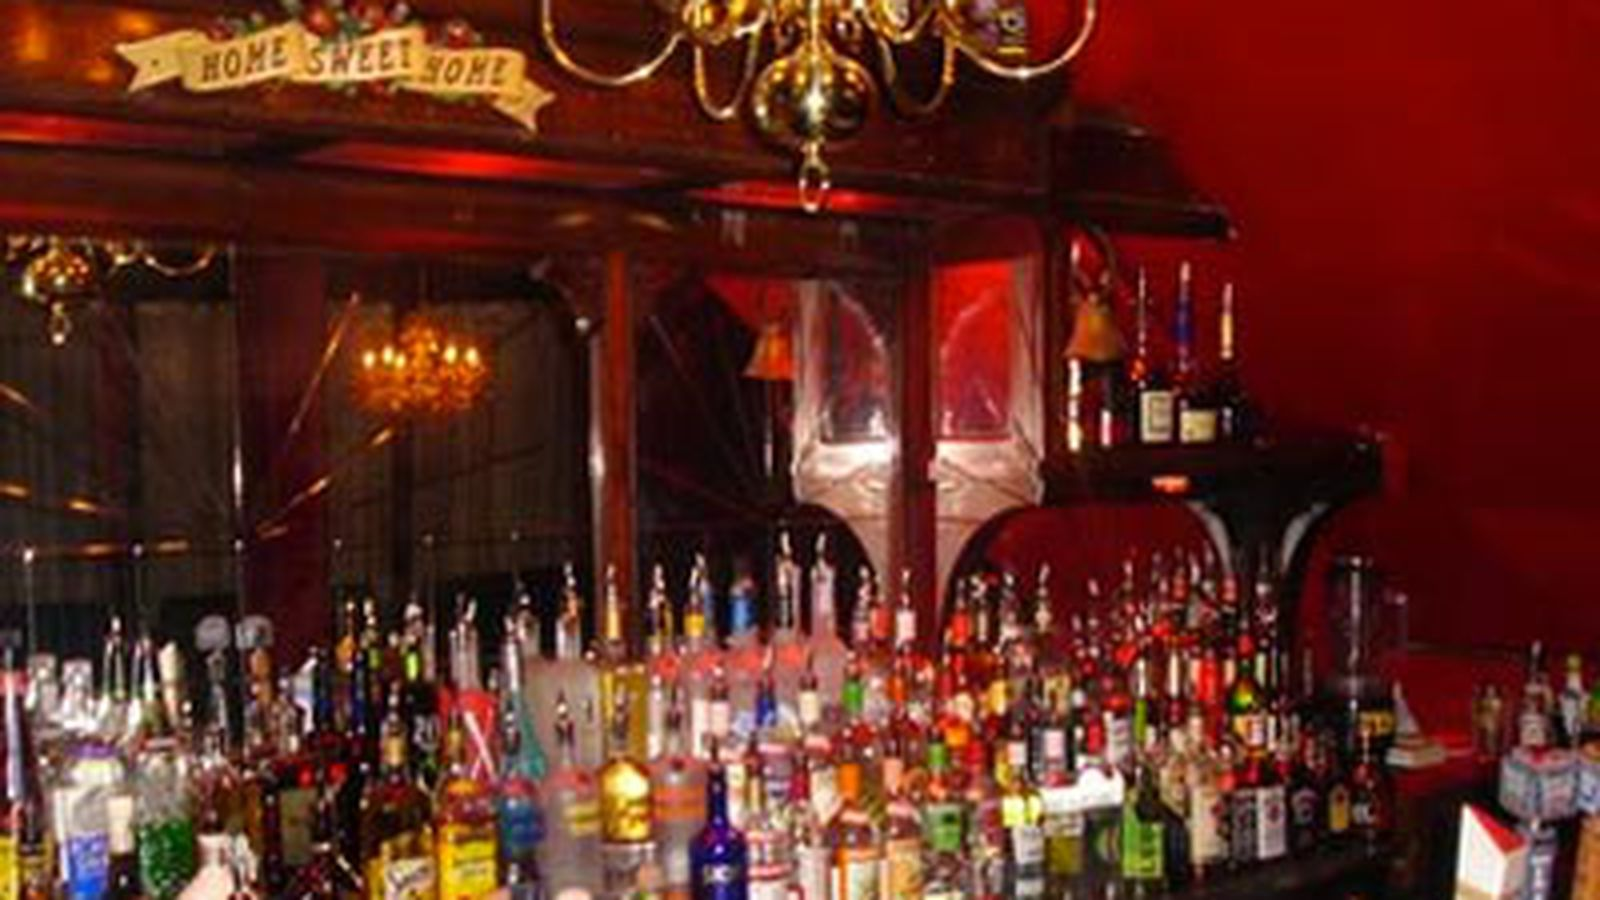 Maggy's Lounge to Replace My House in Quincy - Eater Boston